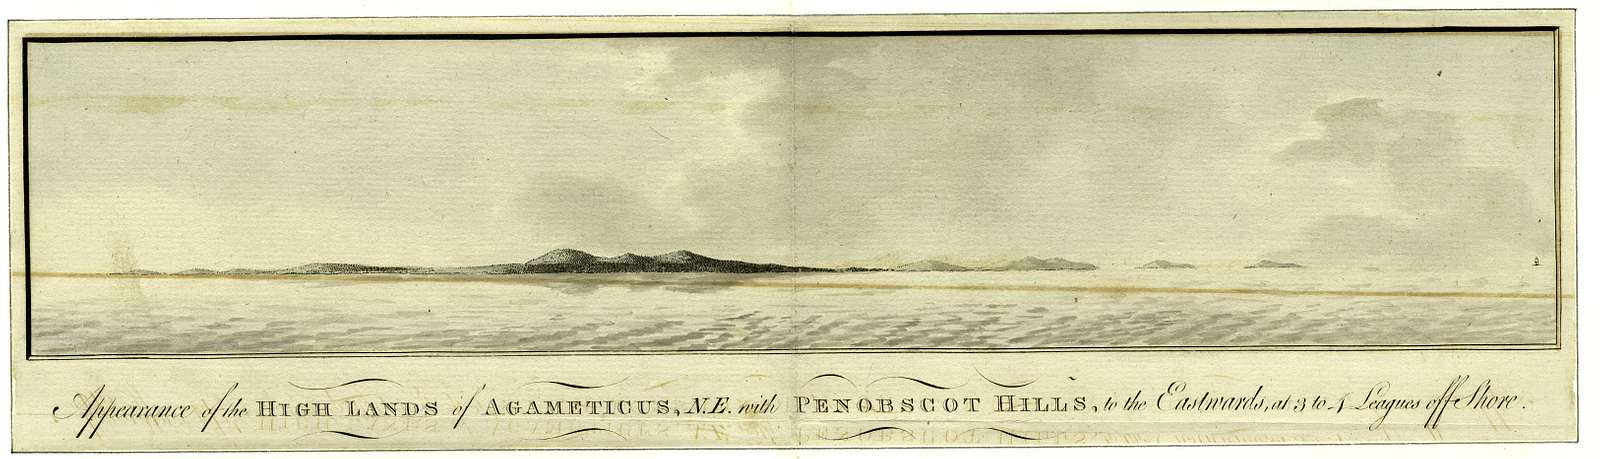 Appearance of the high lands of Agameticus, N.E. with Penobscot Hills, to the eastwards, at 3 to 4 leagues off shore.